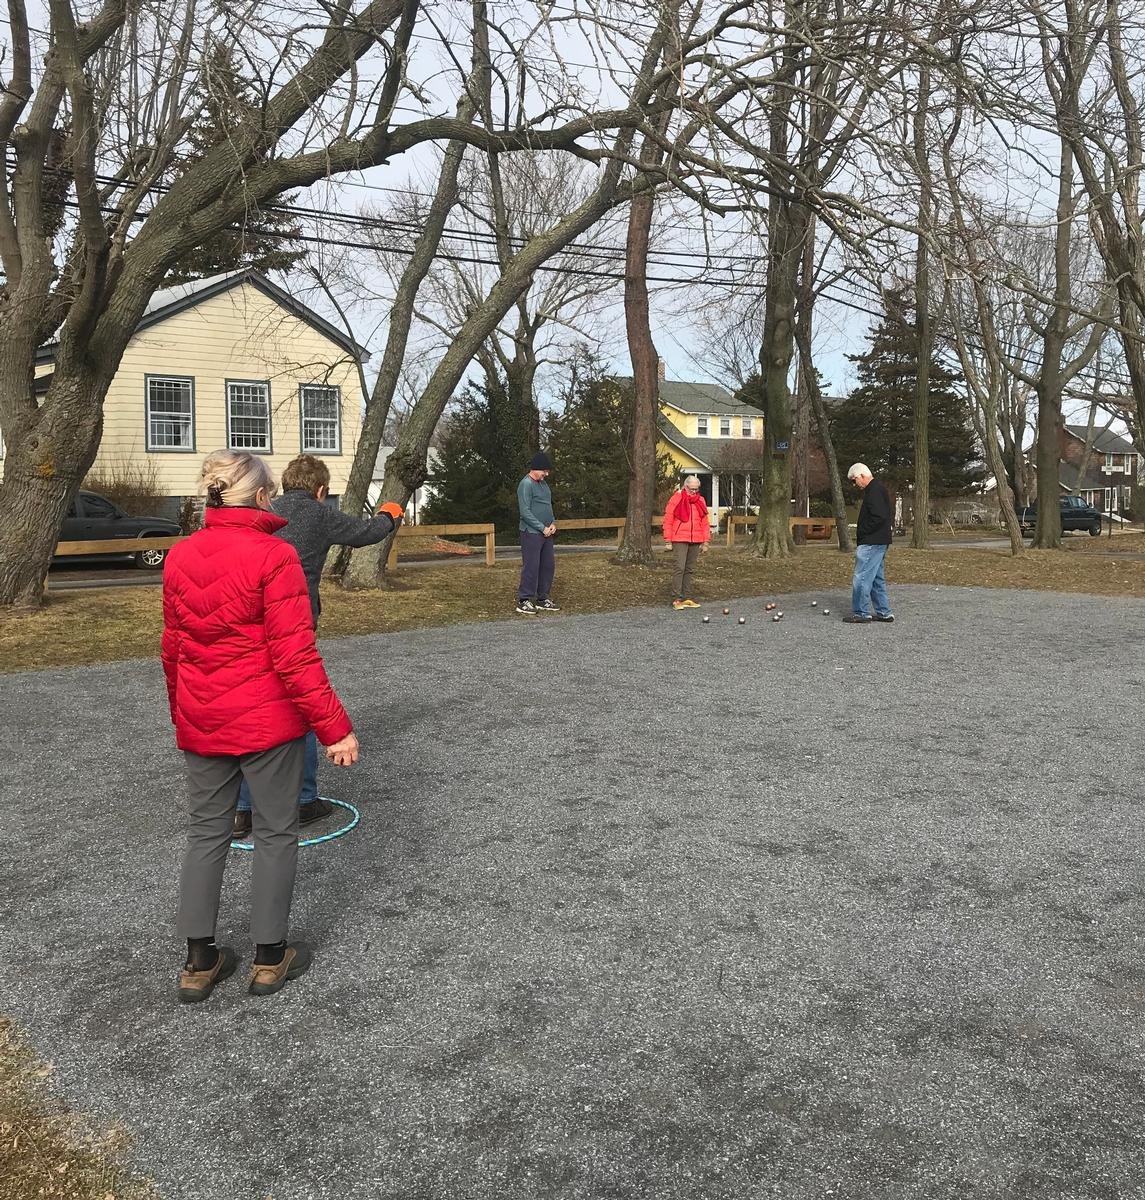 Start of 2018 season for the New Suffolk United Pétanque